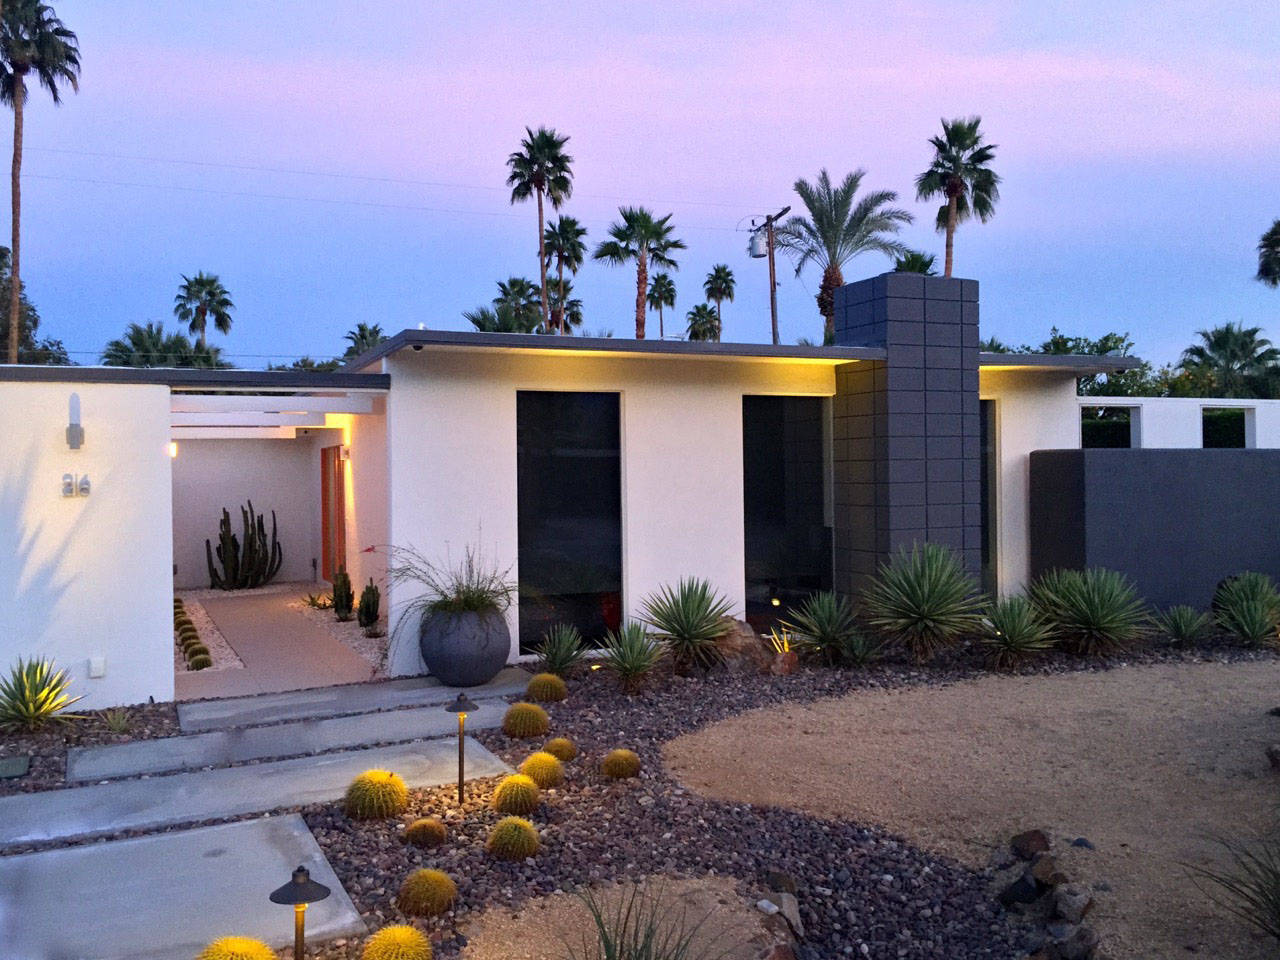 A Meiselman home in Palm Springs. Source